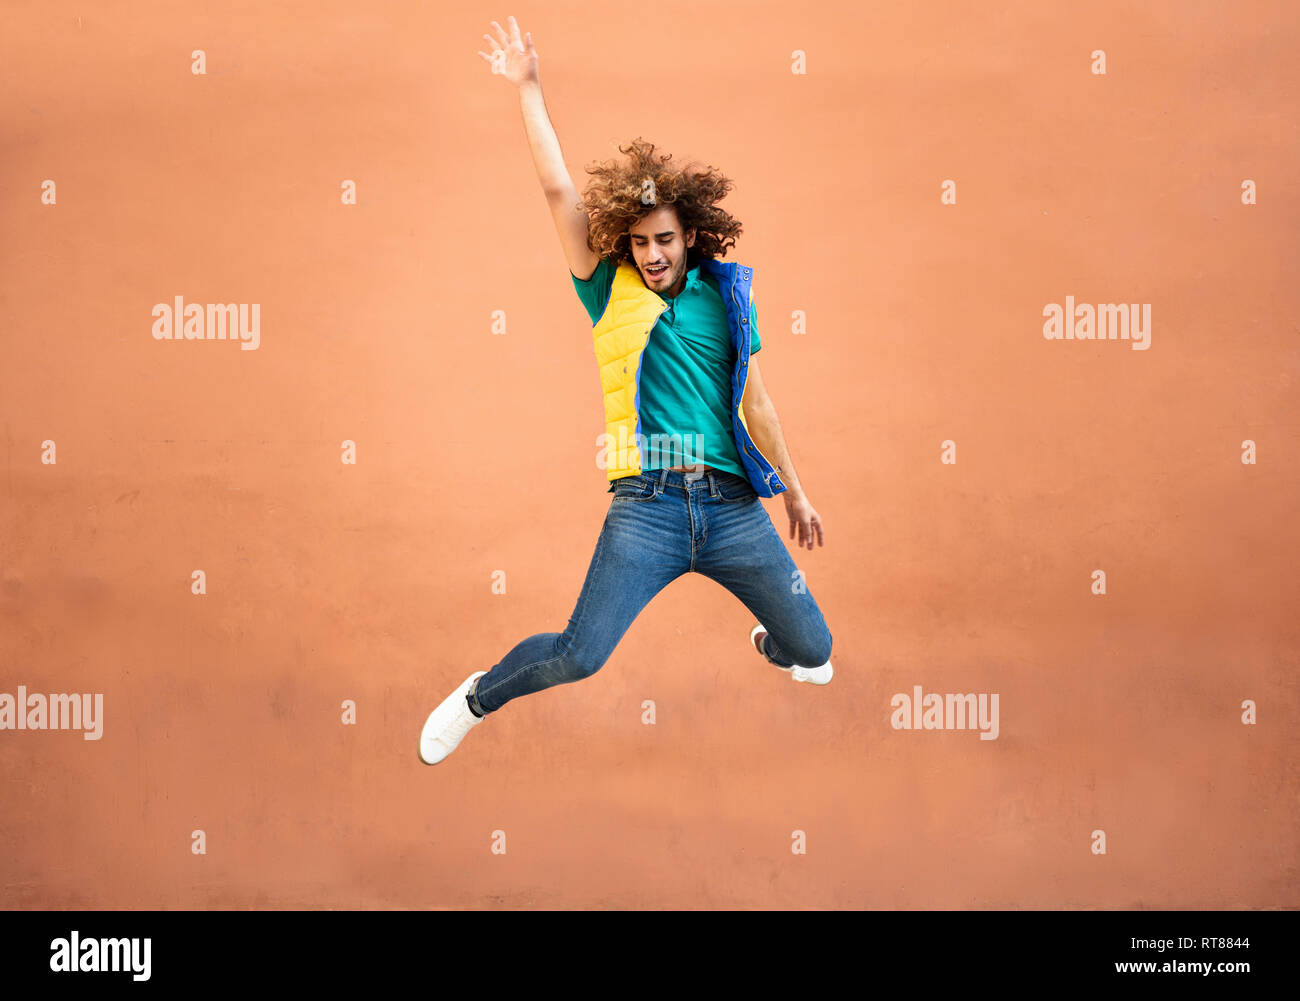 Happy young man with curly hair wearing waistcoat jumping in the air - Stock Image